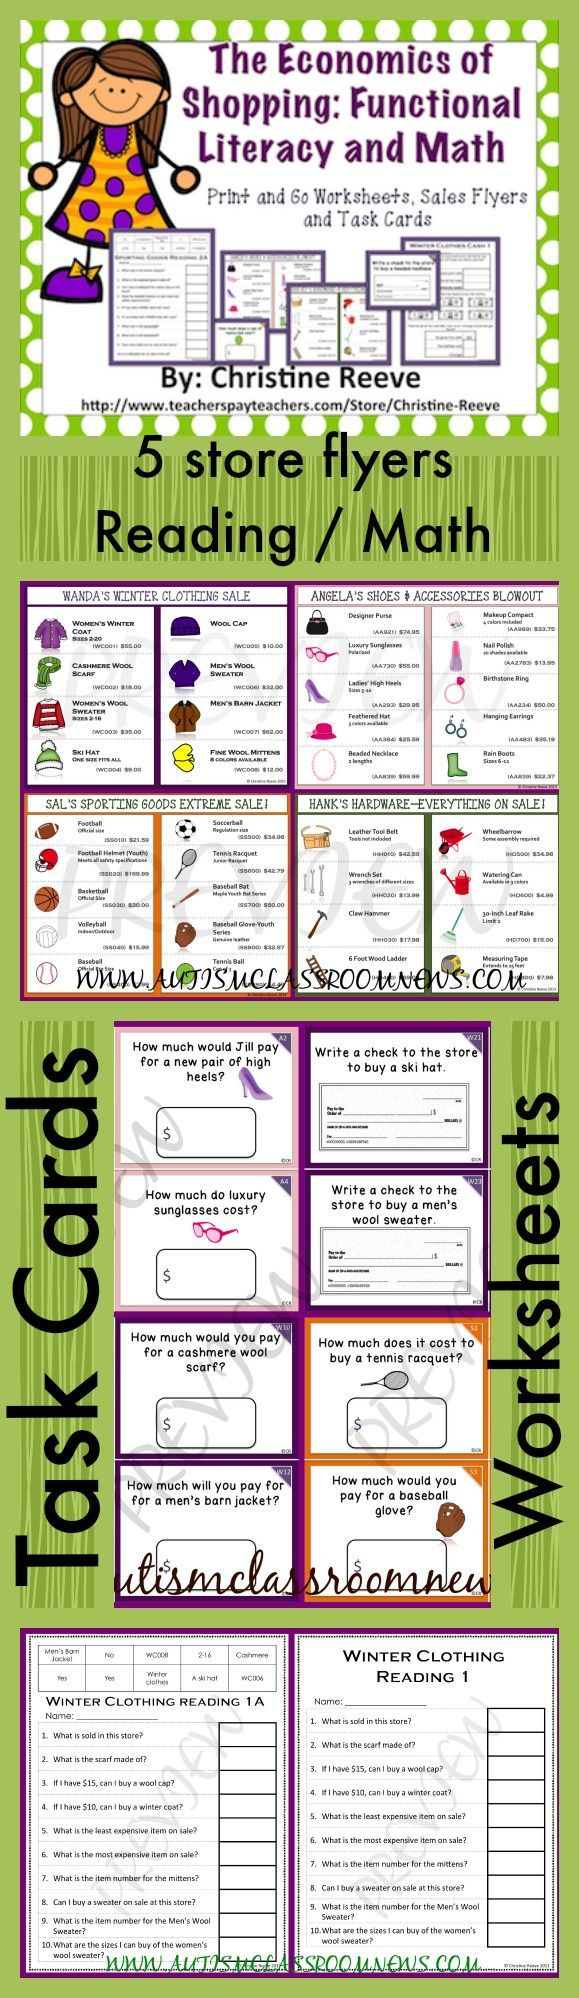 worksheet Practical Money Skills Worksheets 33 best math images on pinterest 5th grade free printable this is an easy print and go set of shopping activities for